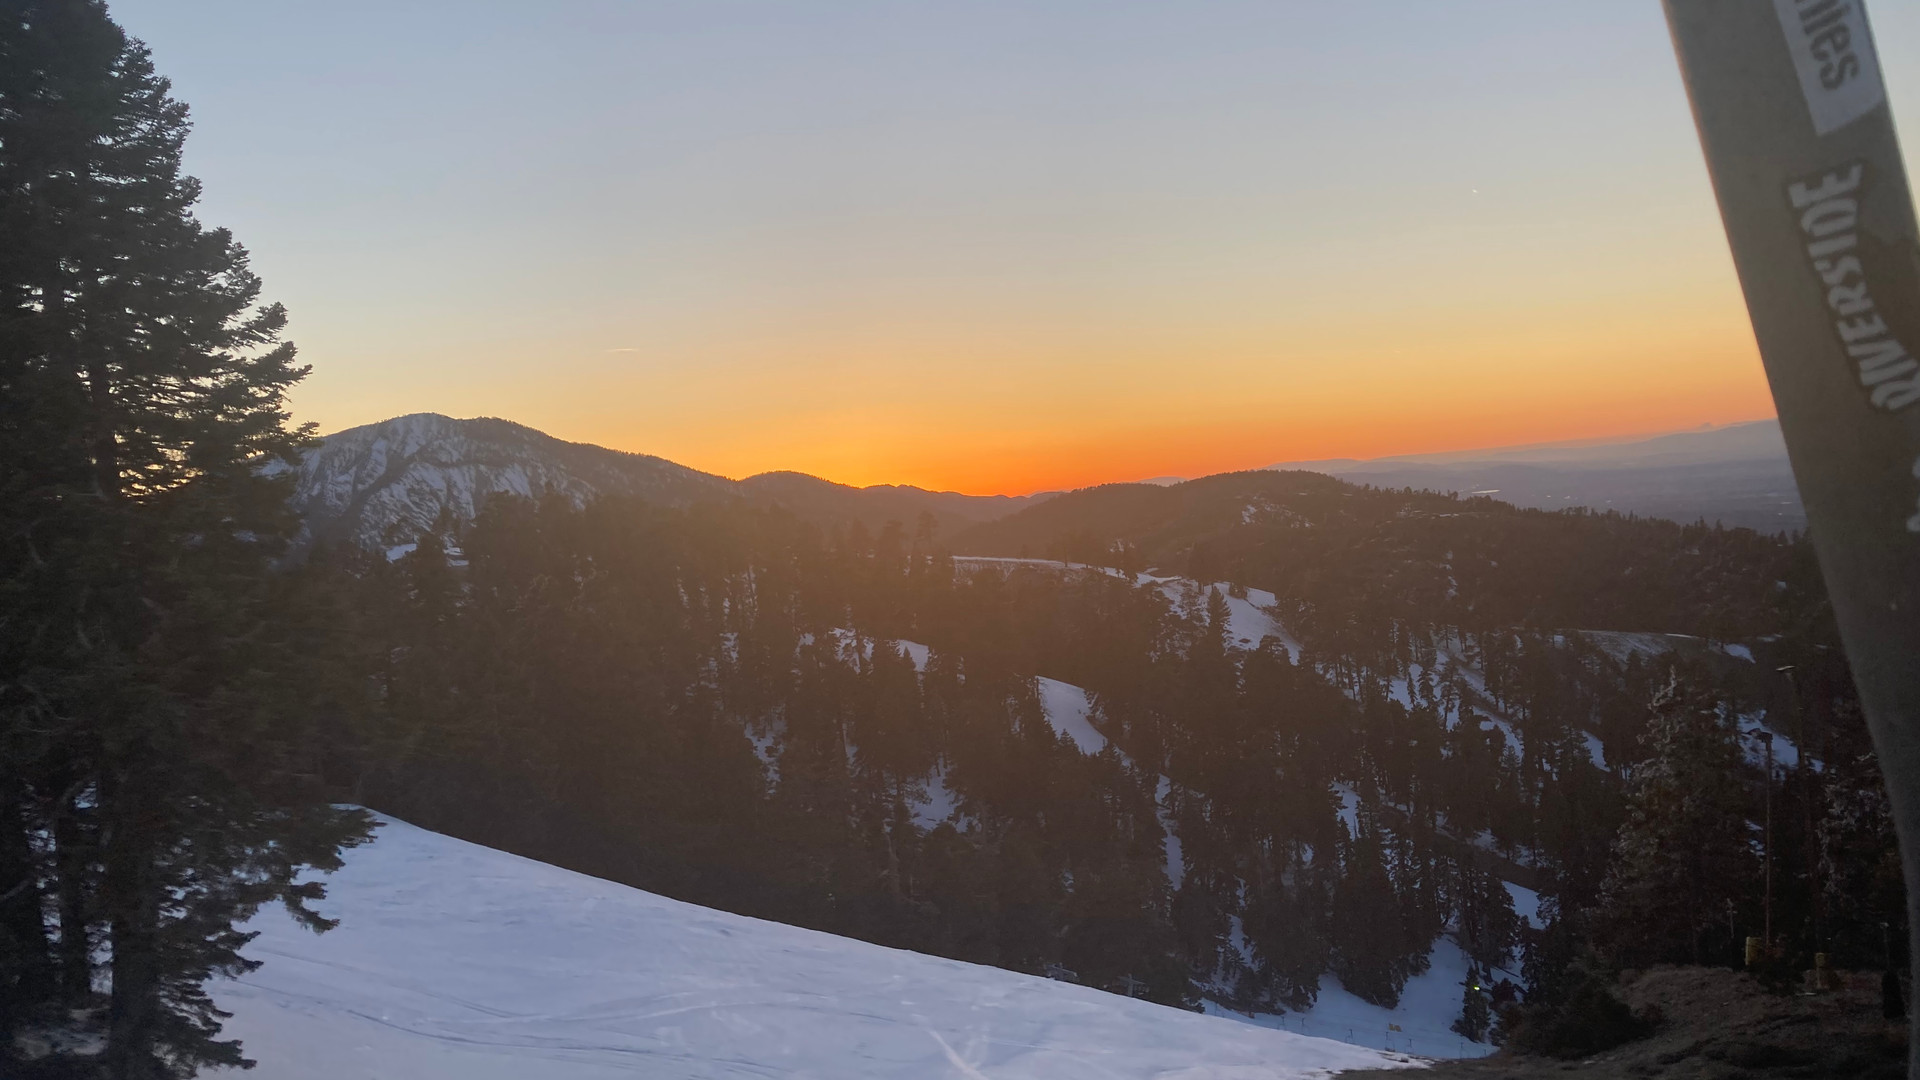 Friday night..another long week. Sunset at 9000' far from the dust and asphalt..bout to rip down this mountain at 40 mph and hopefully forget about everything for a little while.